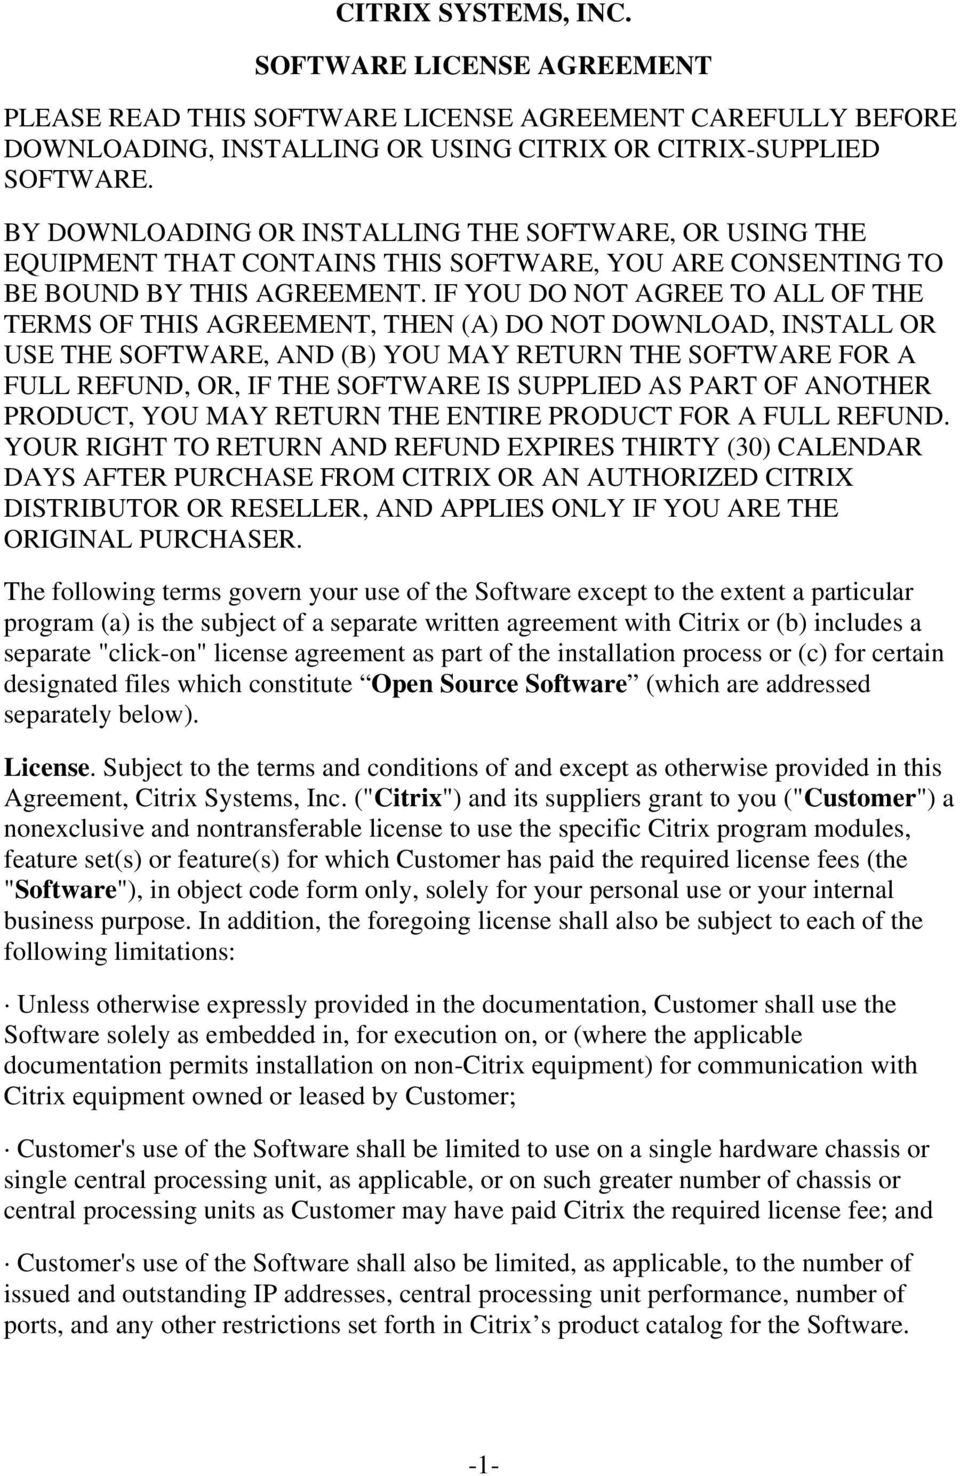 IF YOU DO NOT AGREE TO ALL OF THE TERMS OF THIS AGREEMENT, THEN (A) DO NOT DOWNLOAD, INSTALL OR USE THE SOFTWARE, AND (B) YOU MAY RETURN THE SOFTWARE FOR A FULL REFUND, OR, IF THE SOFTWARE IS